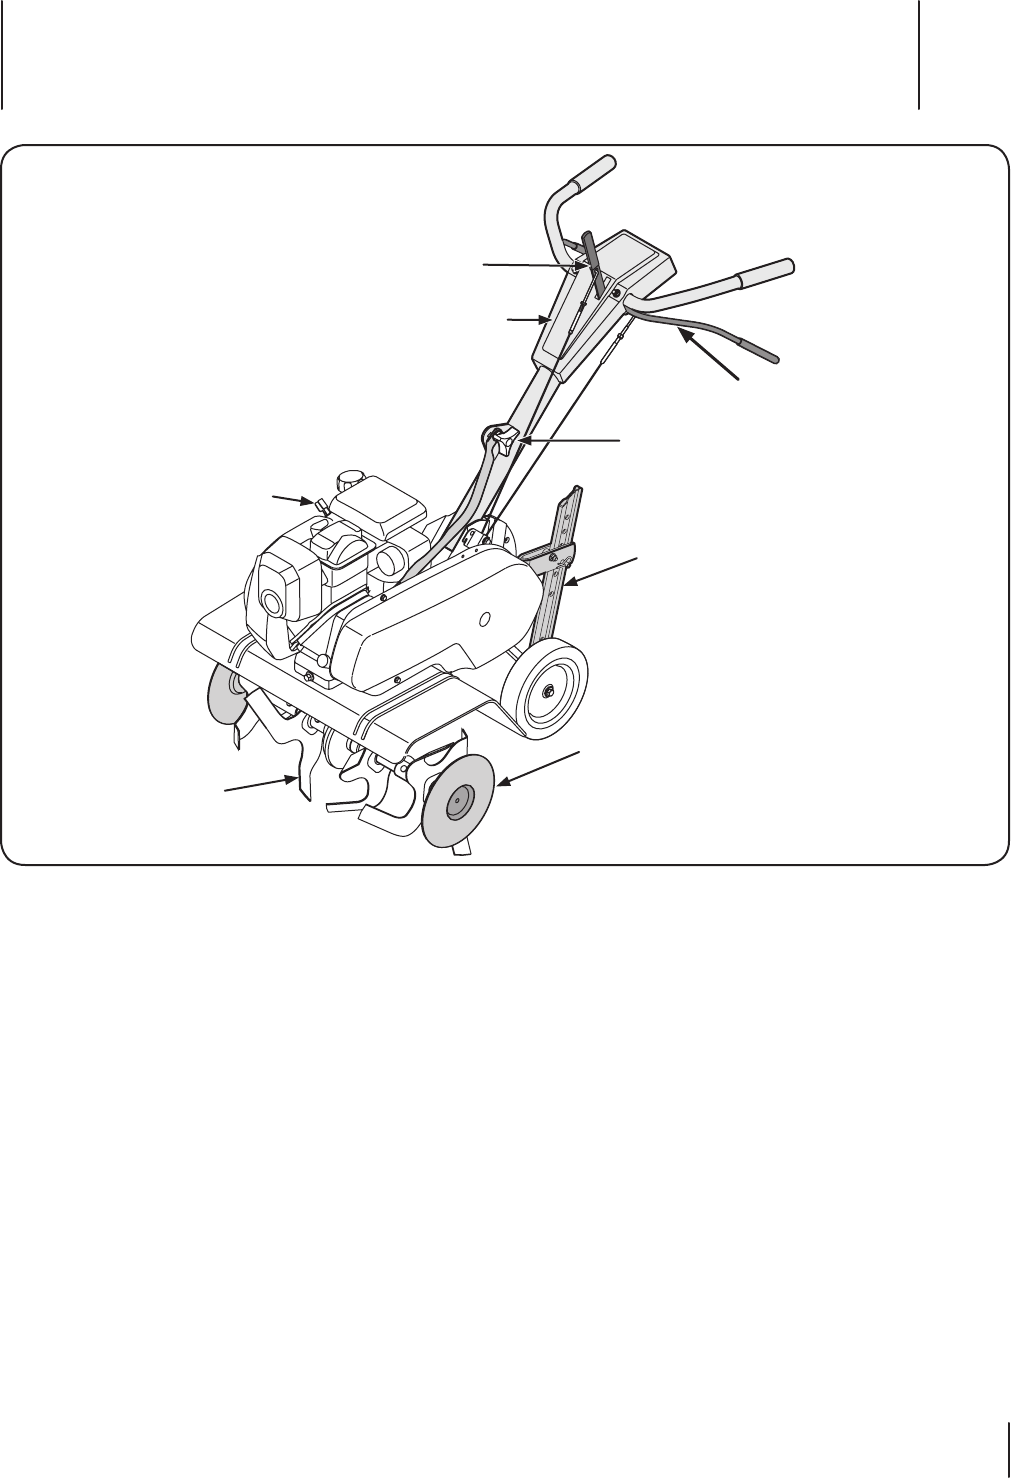 Cub Cadet Tiller FT 24 manual (page 9 of 40)